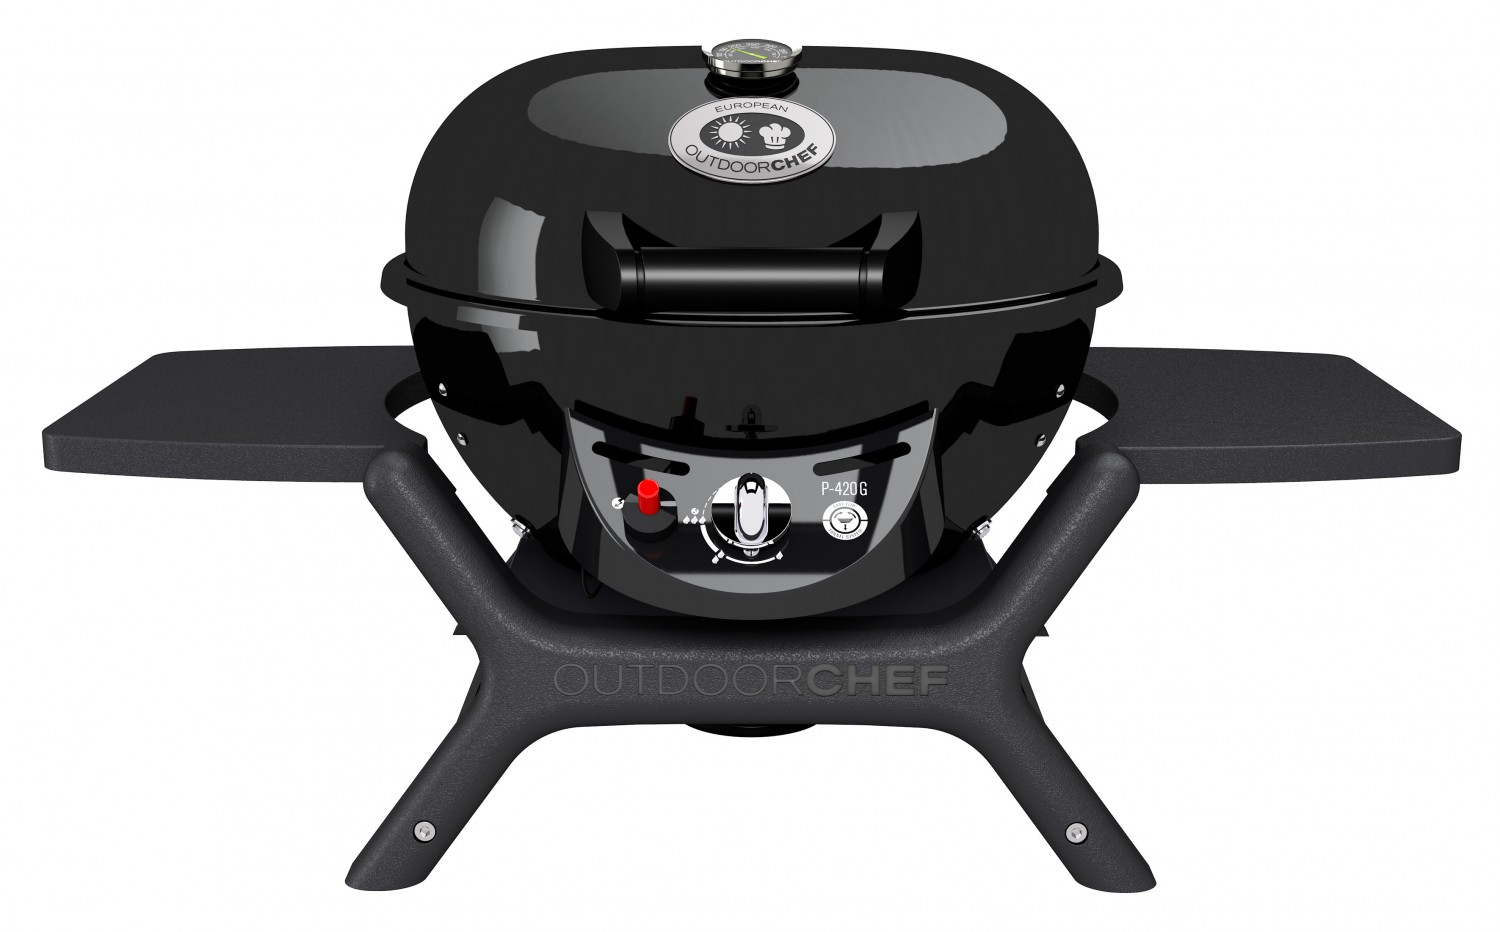 Outdoorchef Holzkohlegrill Test : Outdoorchef minichef 420 g